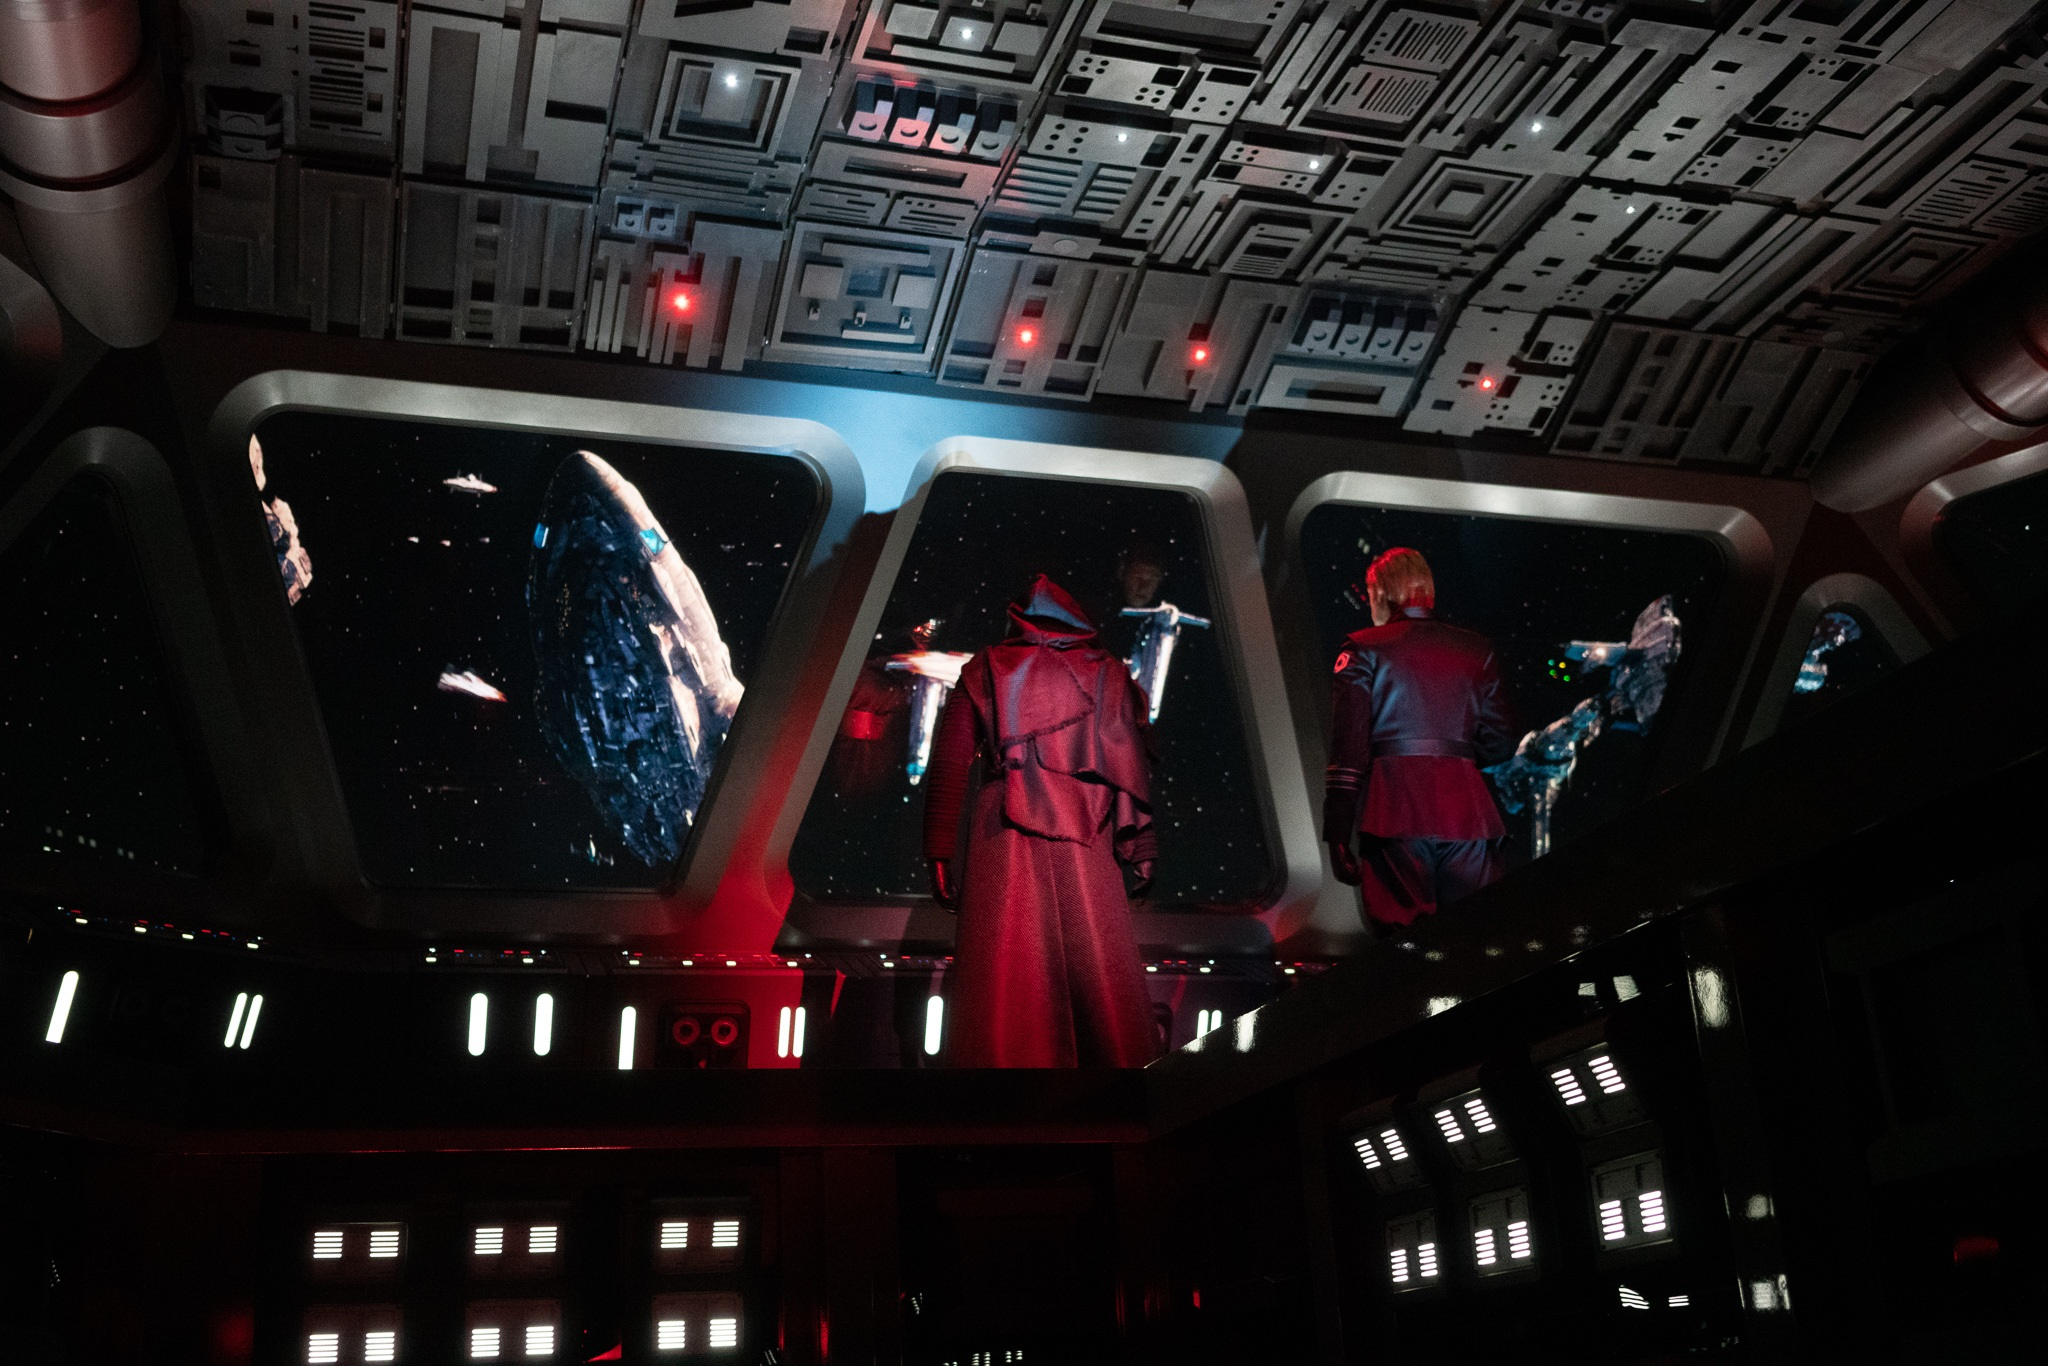 STAR WARS: Rise of the Resistance Ride at Disneyland